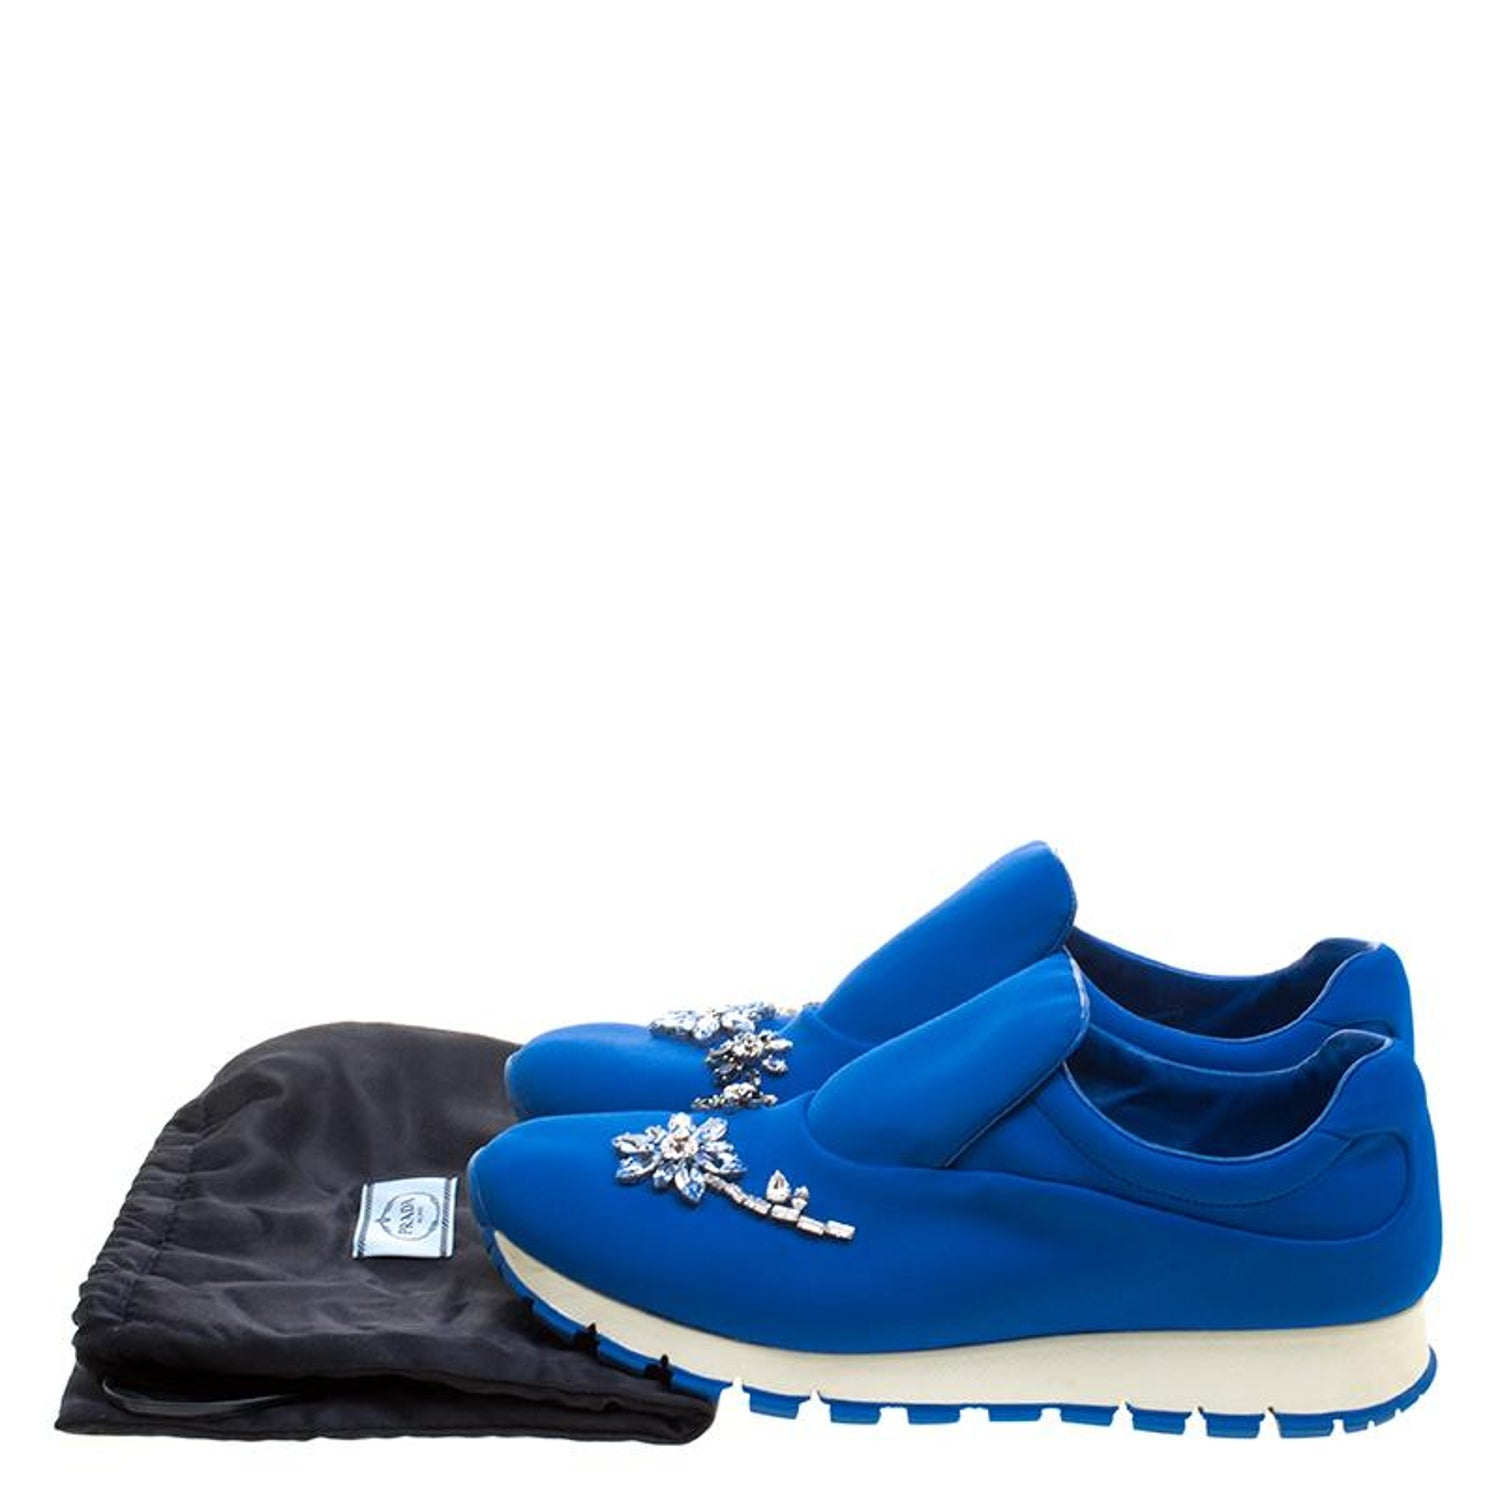 a0f052256b9 Prada For Harrods Blue Nylon Limited Edition Catch Me You Can Crystal Size  38.5